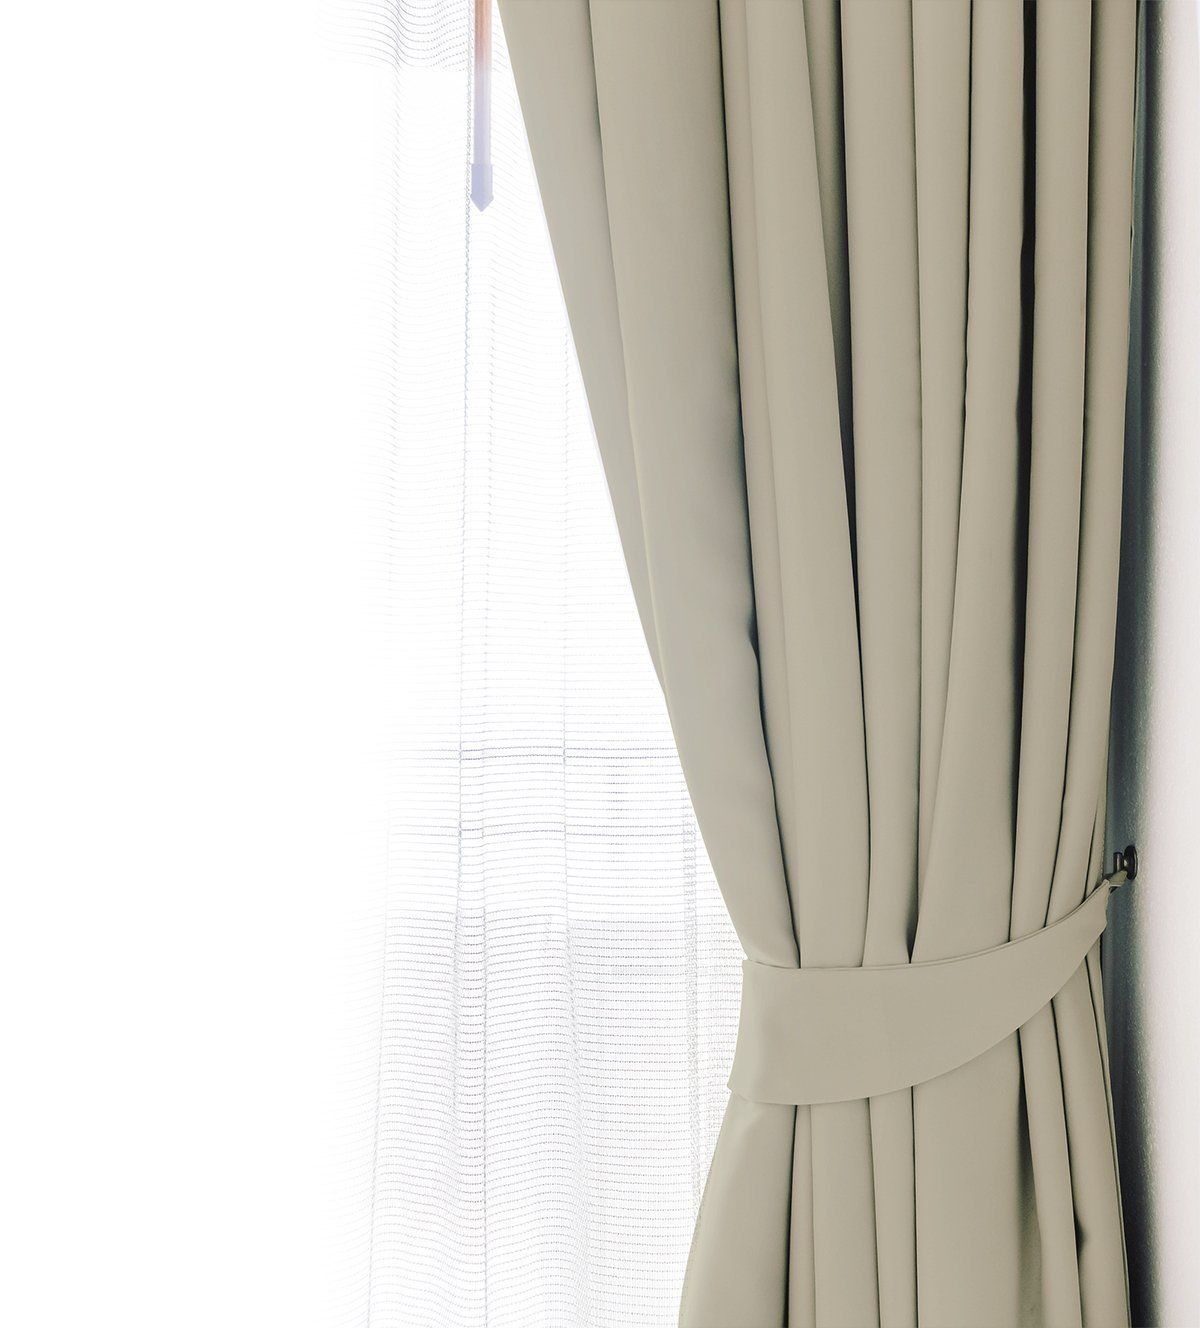 Where Can I Buy Cheap Curtains 7 Of The Best Blackout Curtains On Amazon According To Reviewers